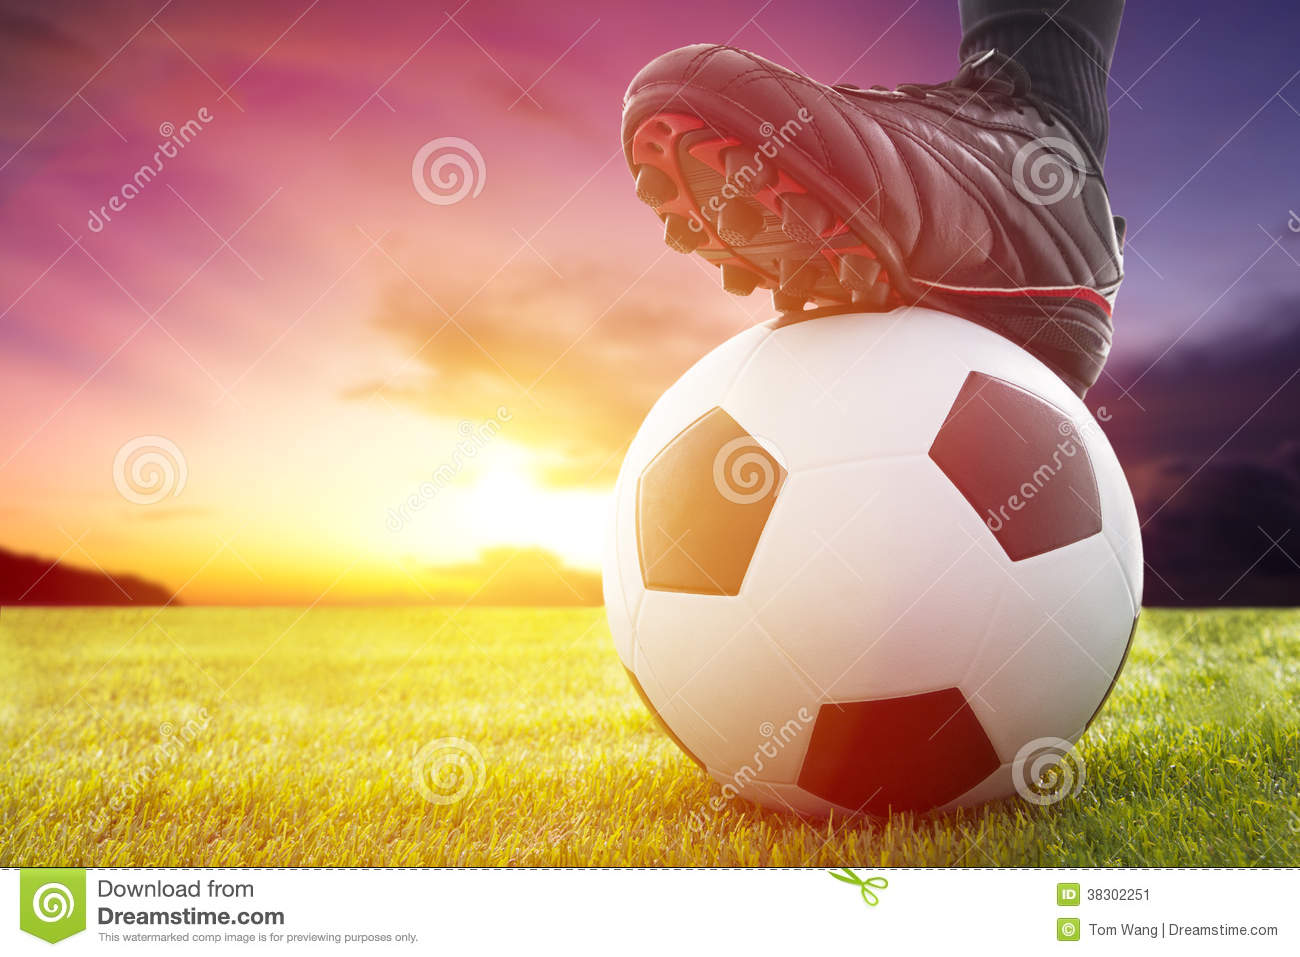 Football Or Soccer Ball At The Kickoff Of A Game With Sunset Stock ...